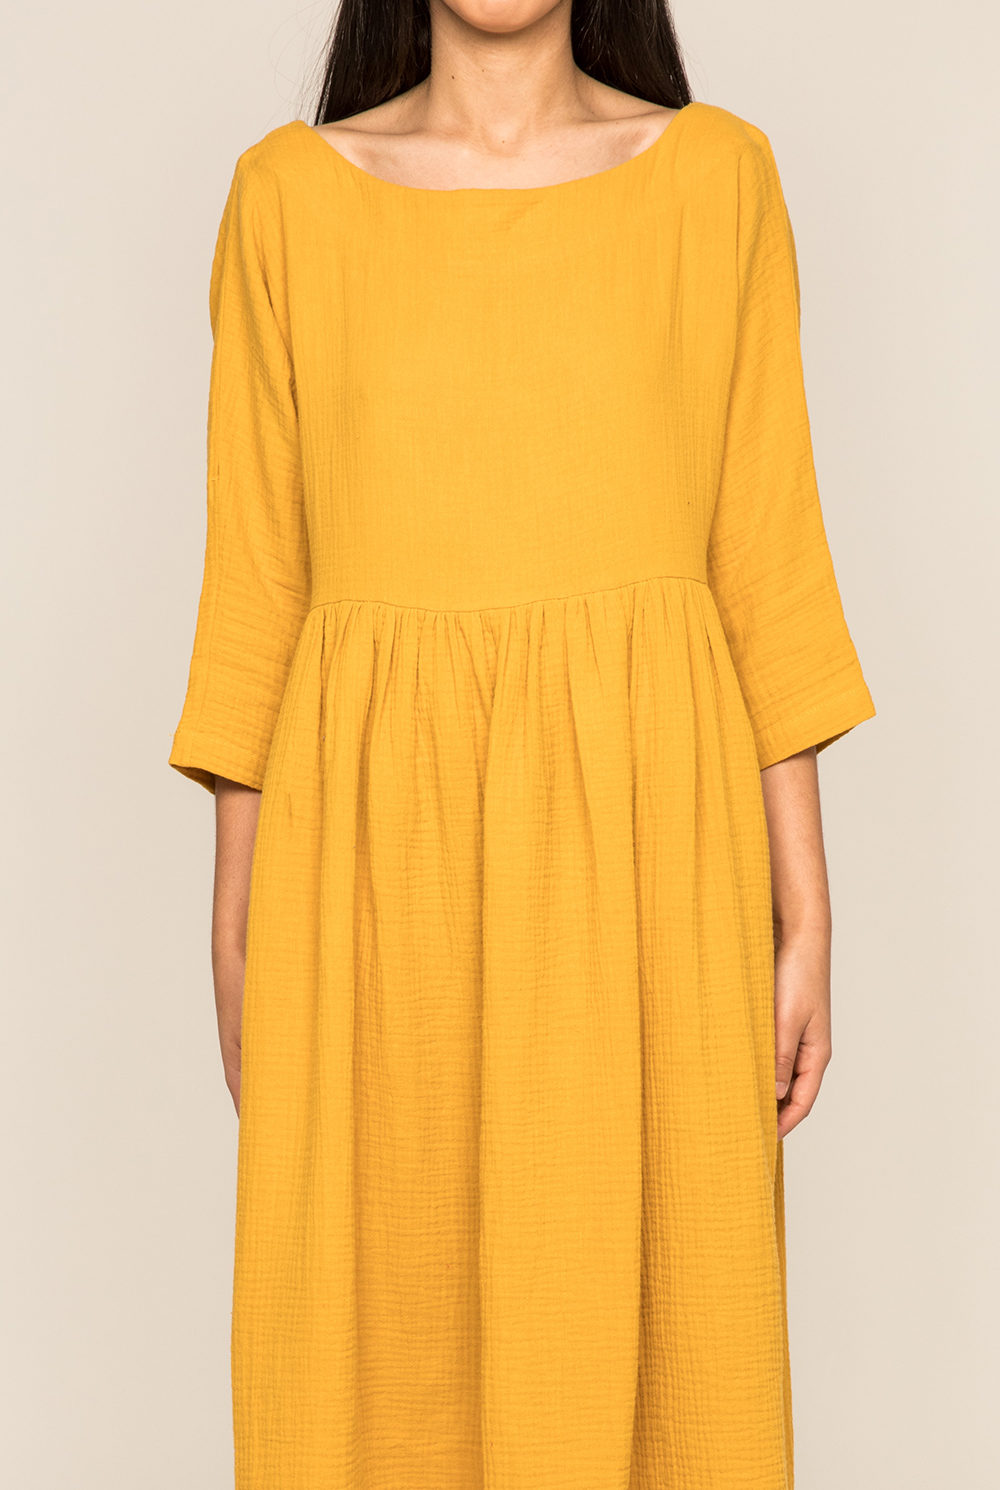 Robe Tanger moutarde